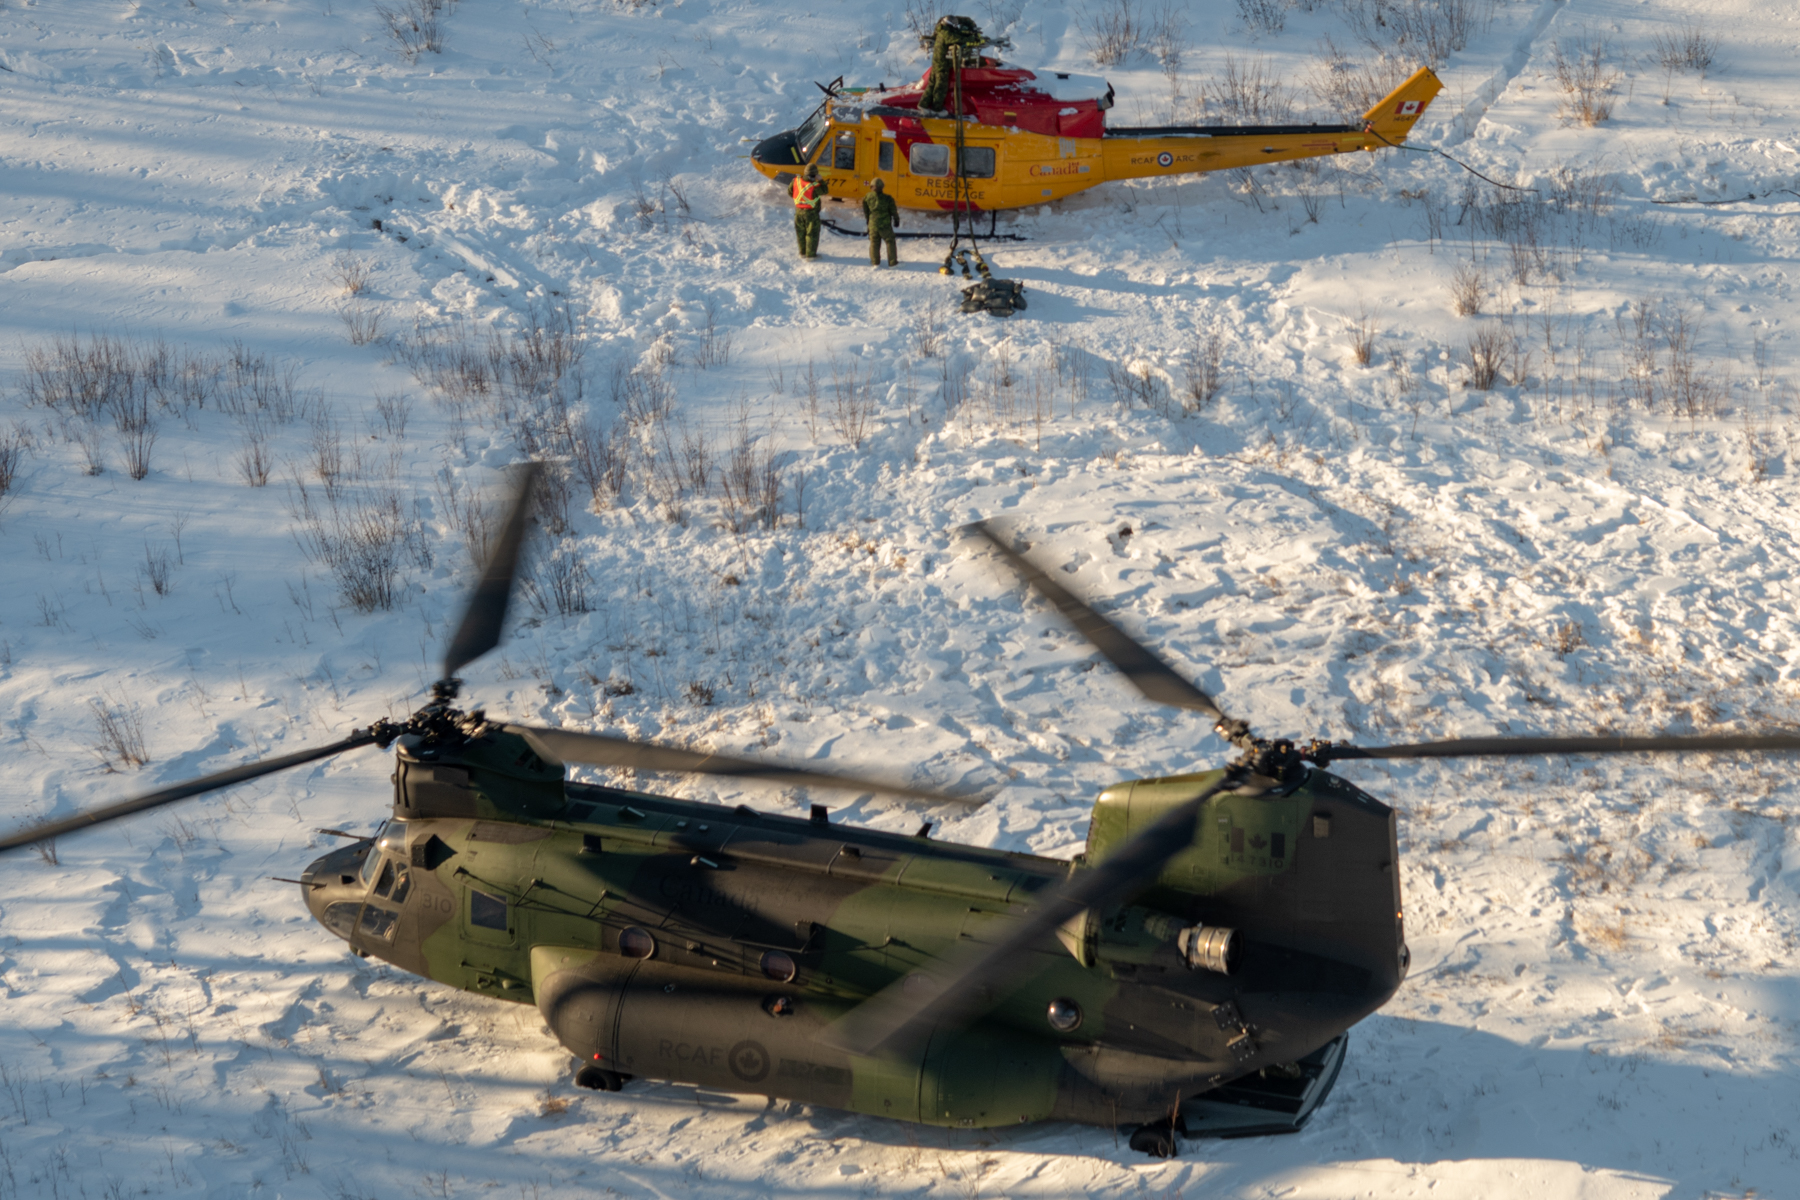 A CH-147F Chinook helicopter rests on the snow in the Cold Lake Air Weapons Range near a damaged CH-146 Griffon helicopter. Slings are being attached to the Griffon, which has had equipment such as its blades and tail rotor removed, in preparation for the Chinook airlifting it back to 4 Wing. PHOTO: Master Corporal Amy Martin, AE05-2019-0007-025